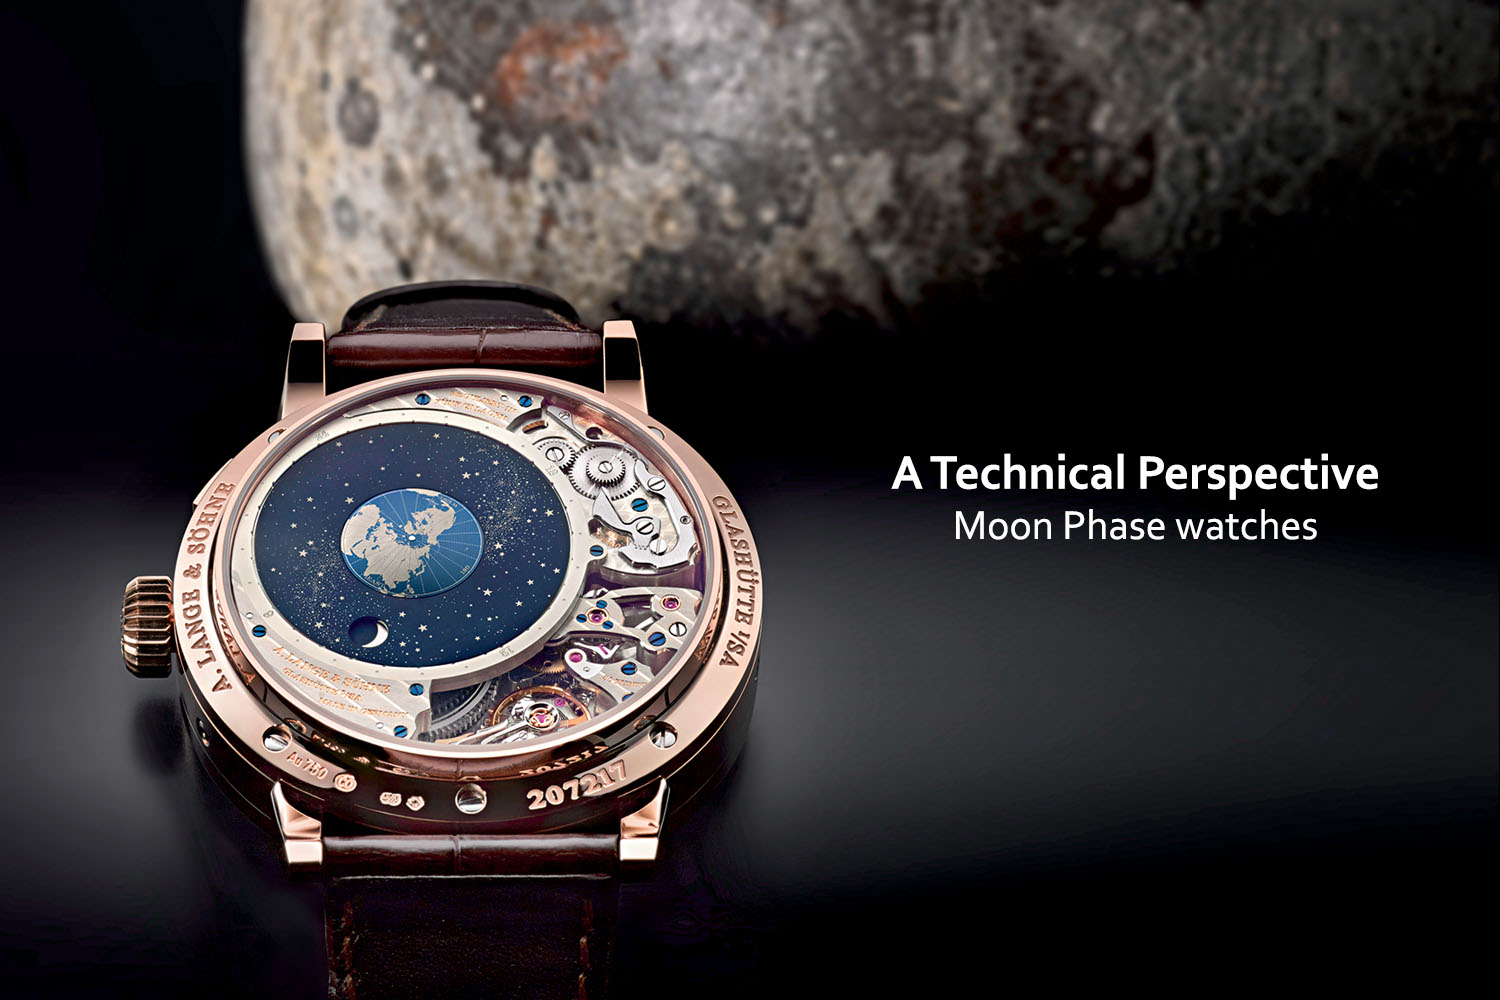 Perpetual Calendar Watches With Moon Phase Citizen Eco Drive Moon Phase Watches A Technical Perspective Moon Phase Watches Monochrome